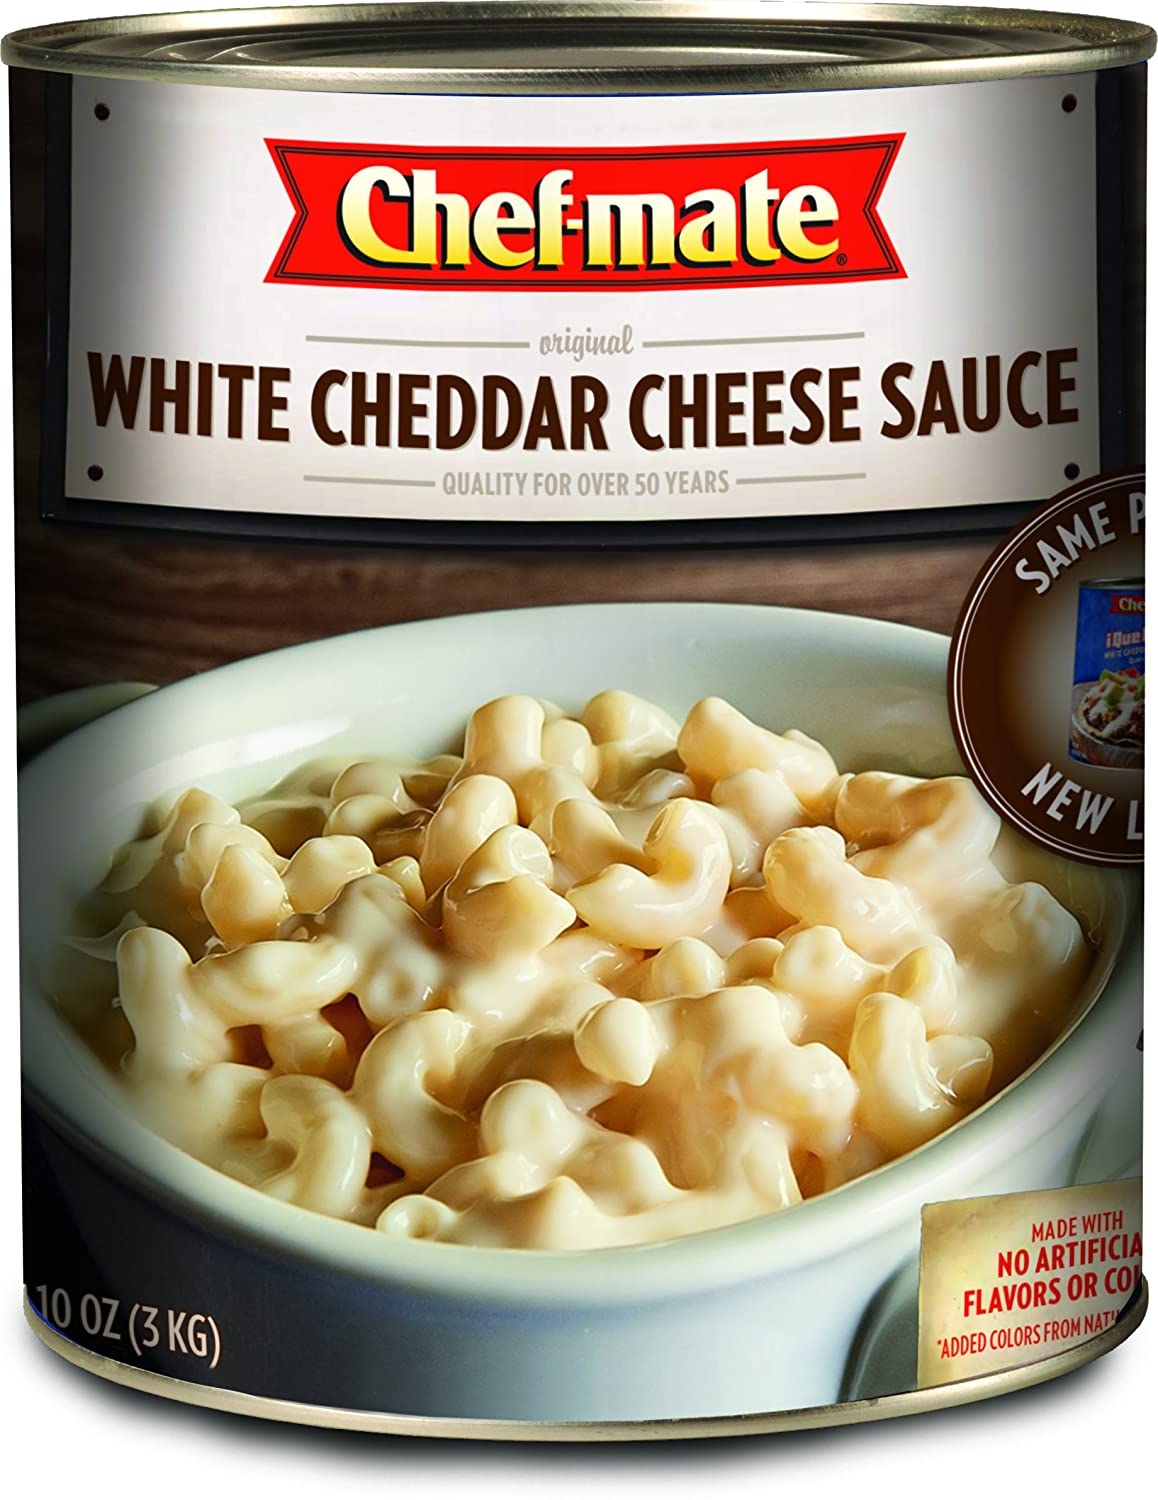 Chef-mate Que Bueno White Cheddar Nacho Cheese Sauce, Food, 6 lb 10 oz, #10 Can Bulk (Pack of 6)